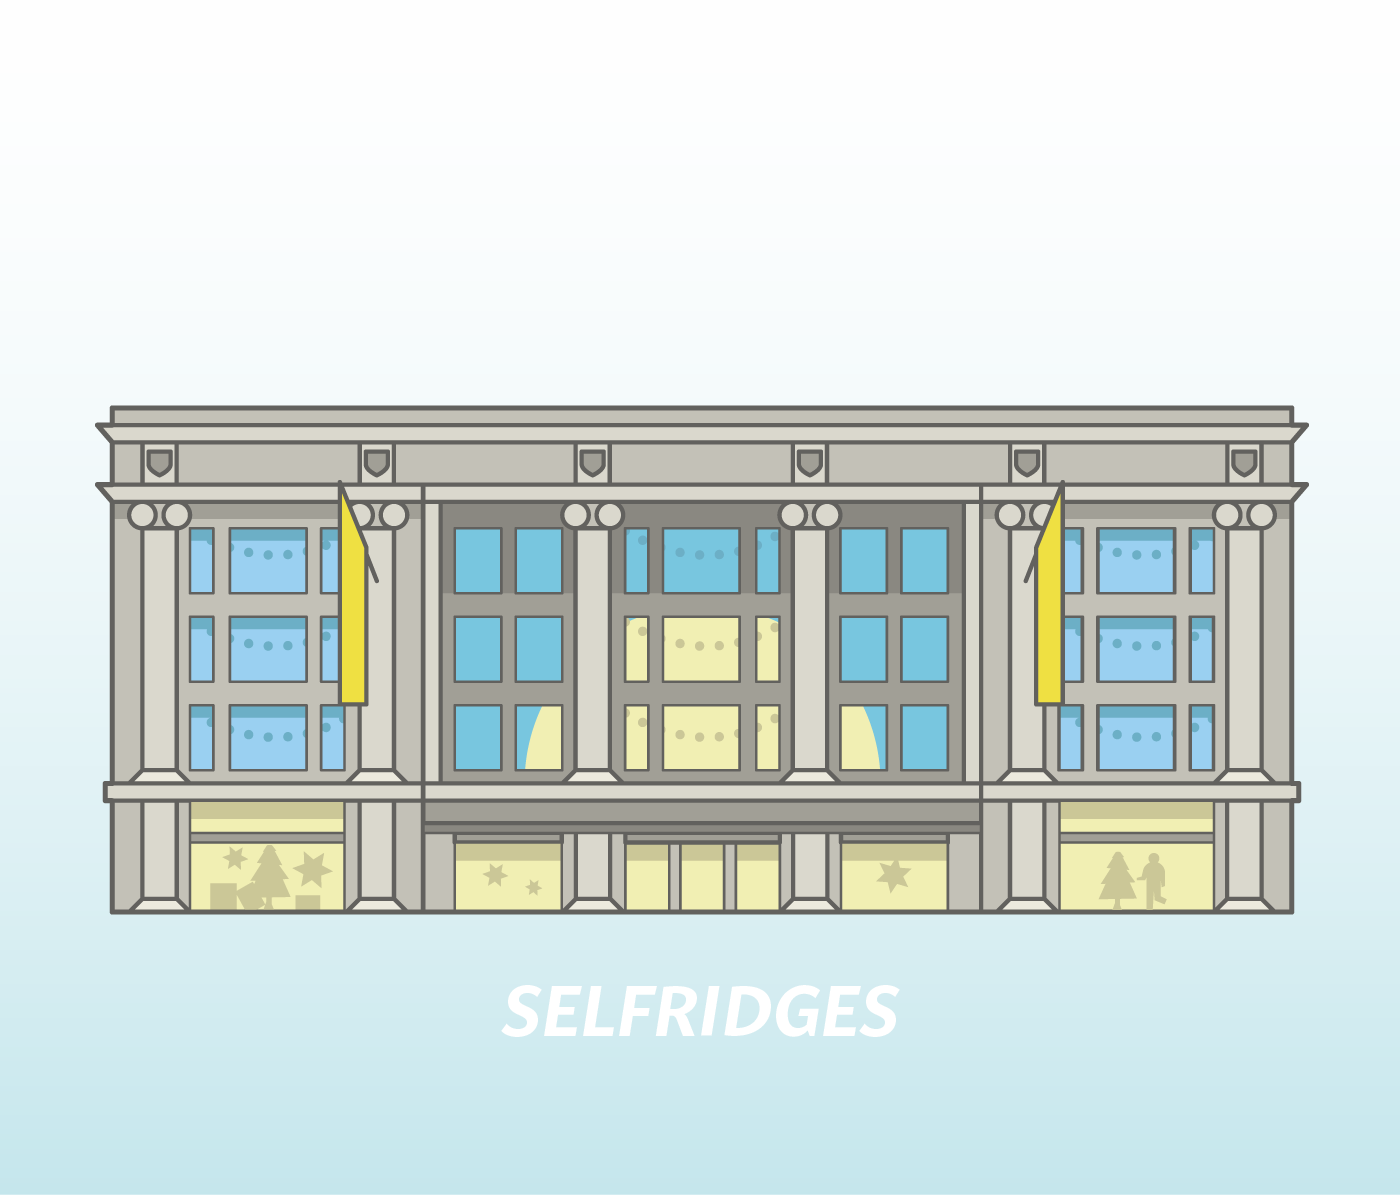 selfridges-web-2